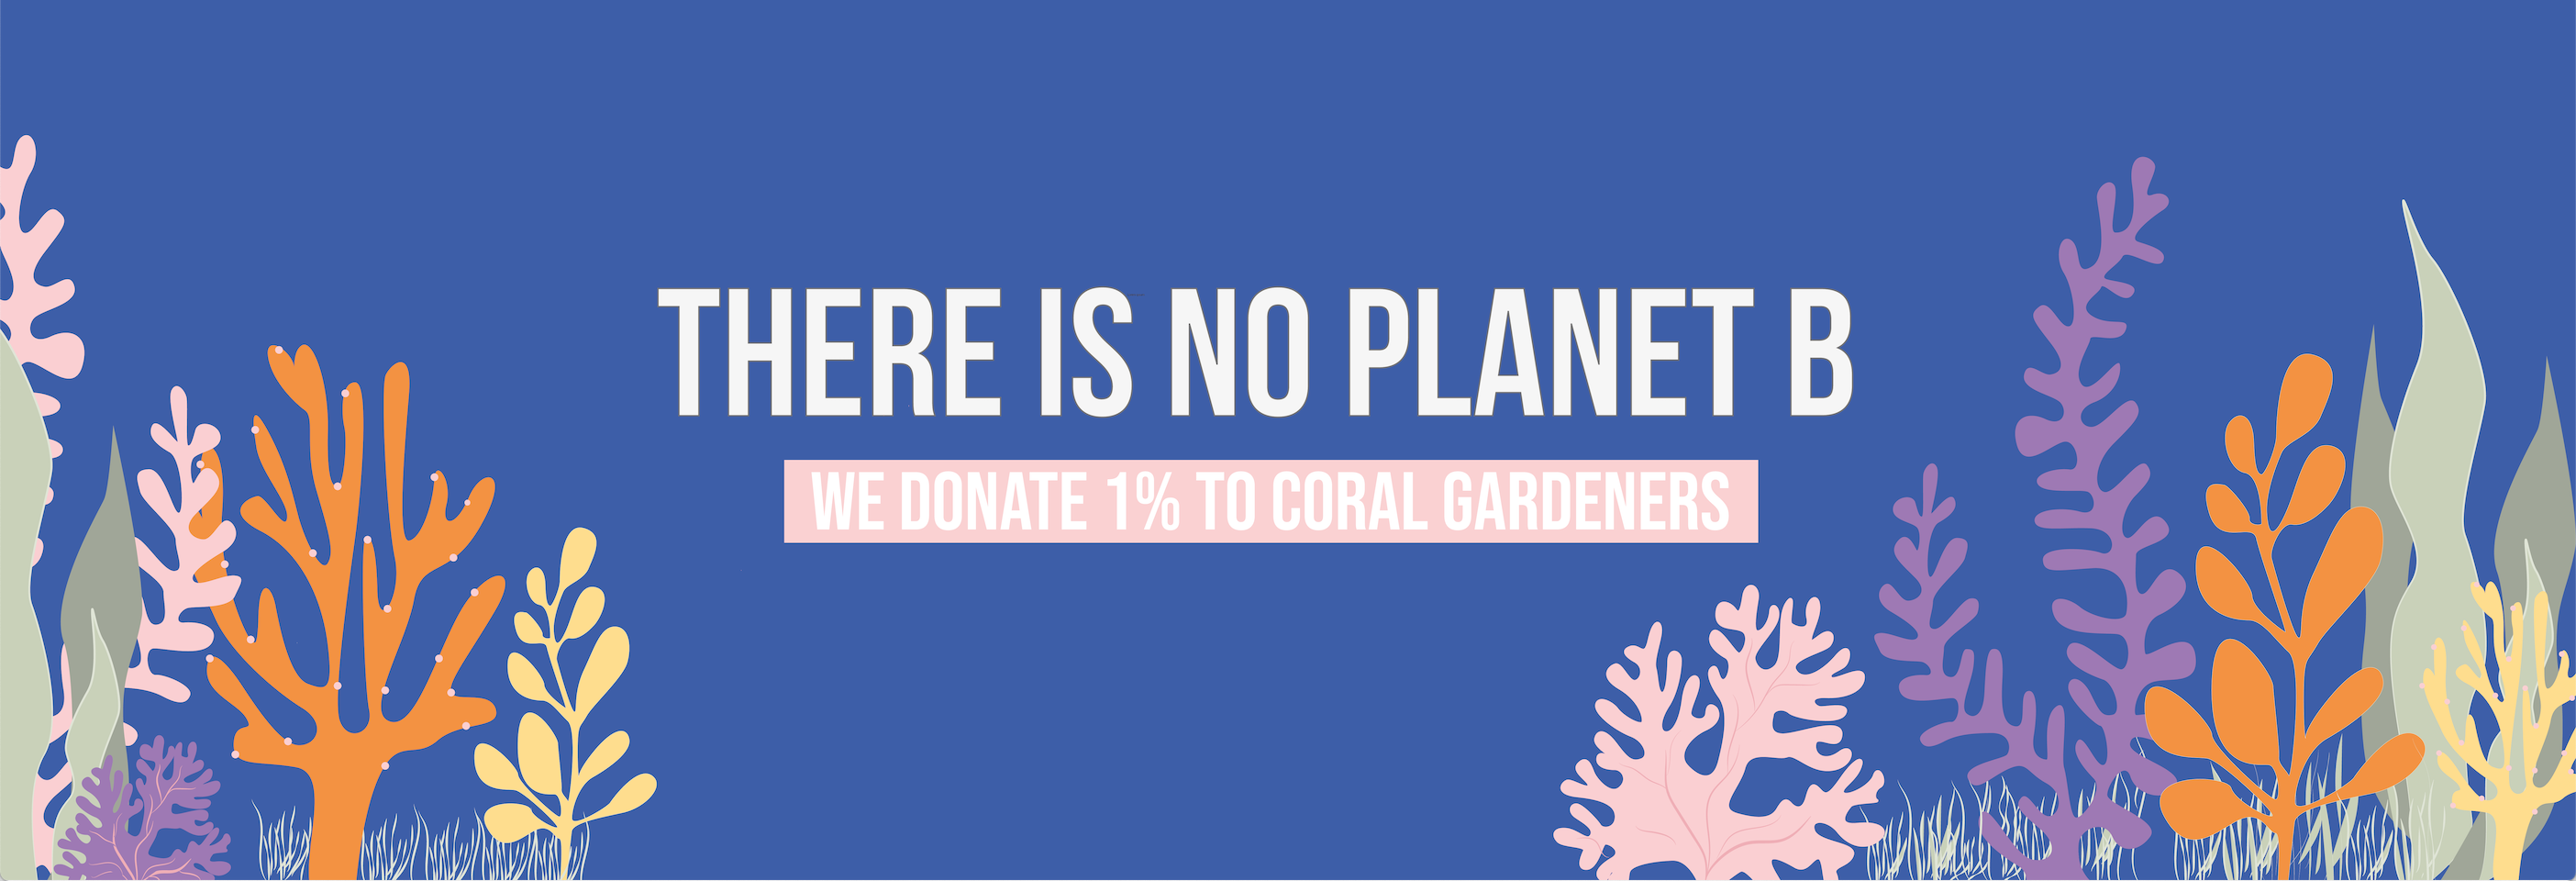 WHY WE JUST HAD TO DONATE 1%  TO CORAL GARDENERS